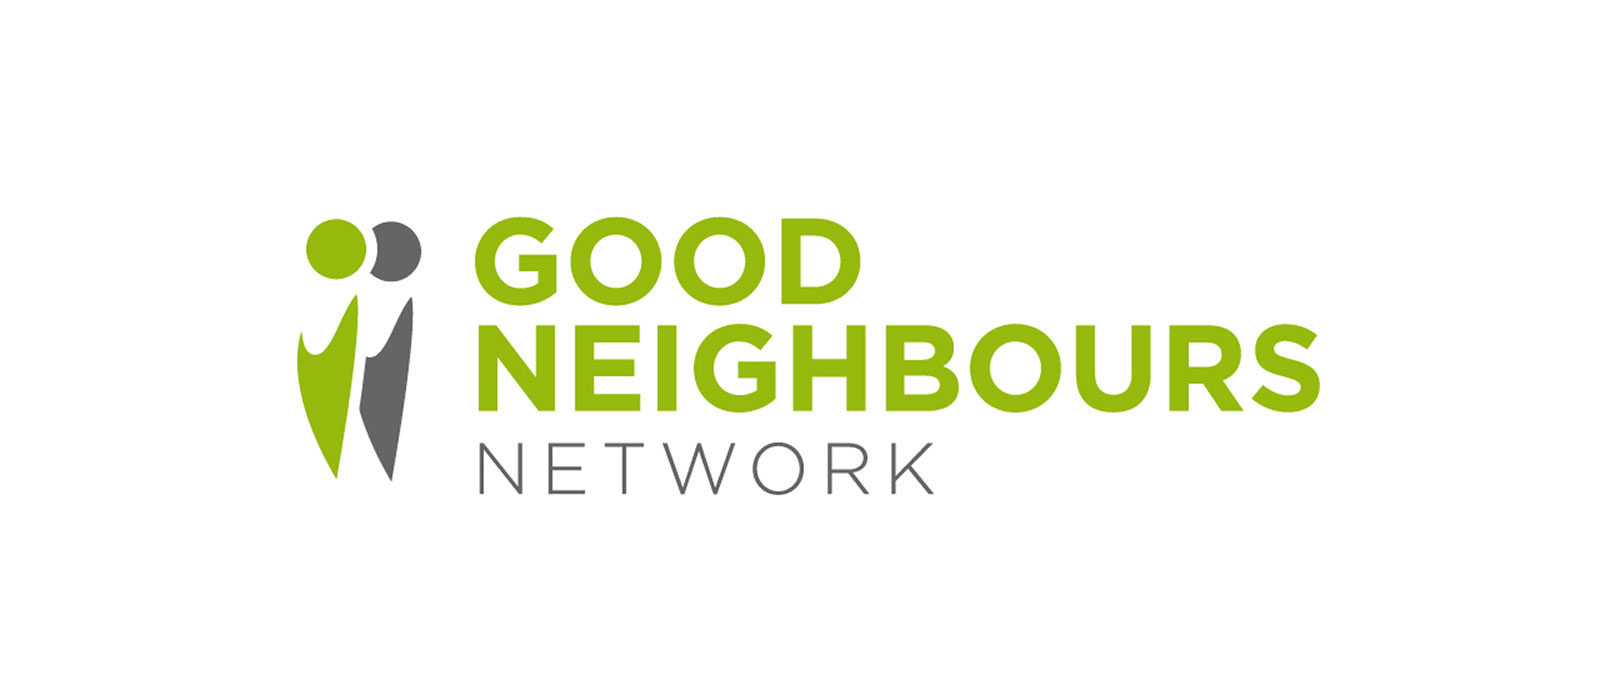 The Good Neighbours Network